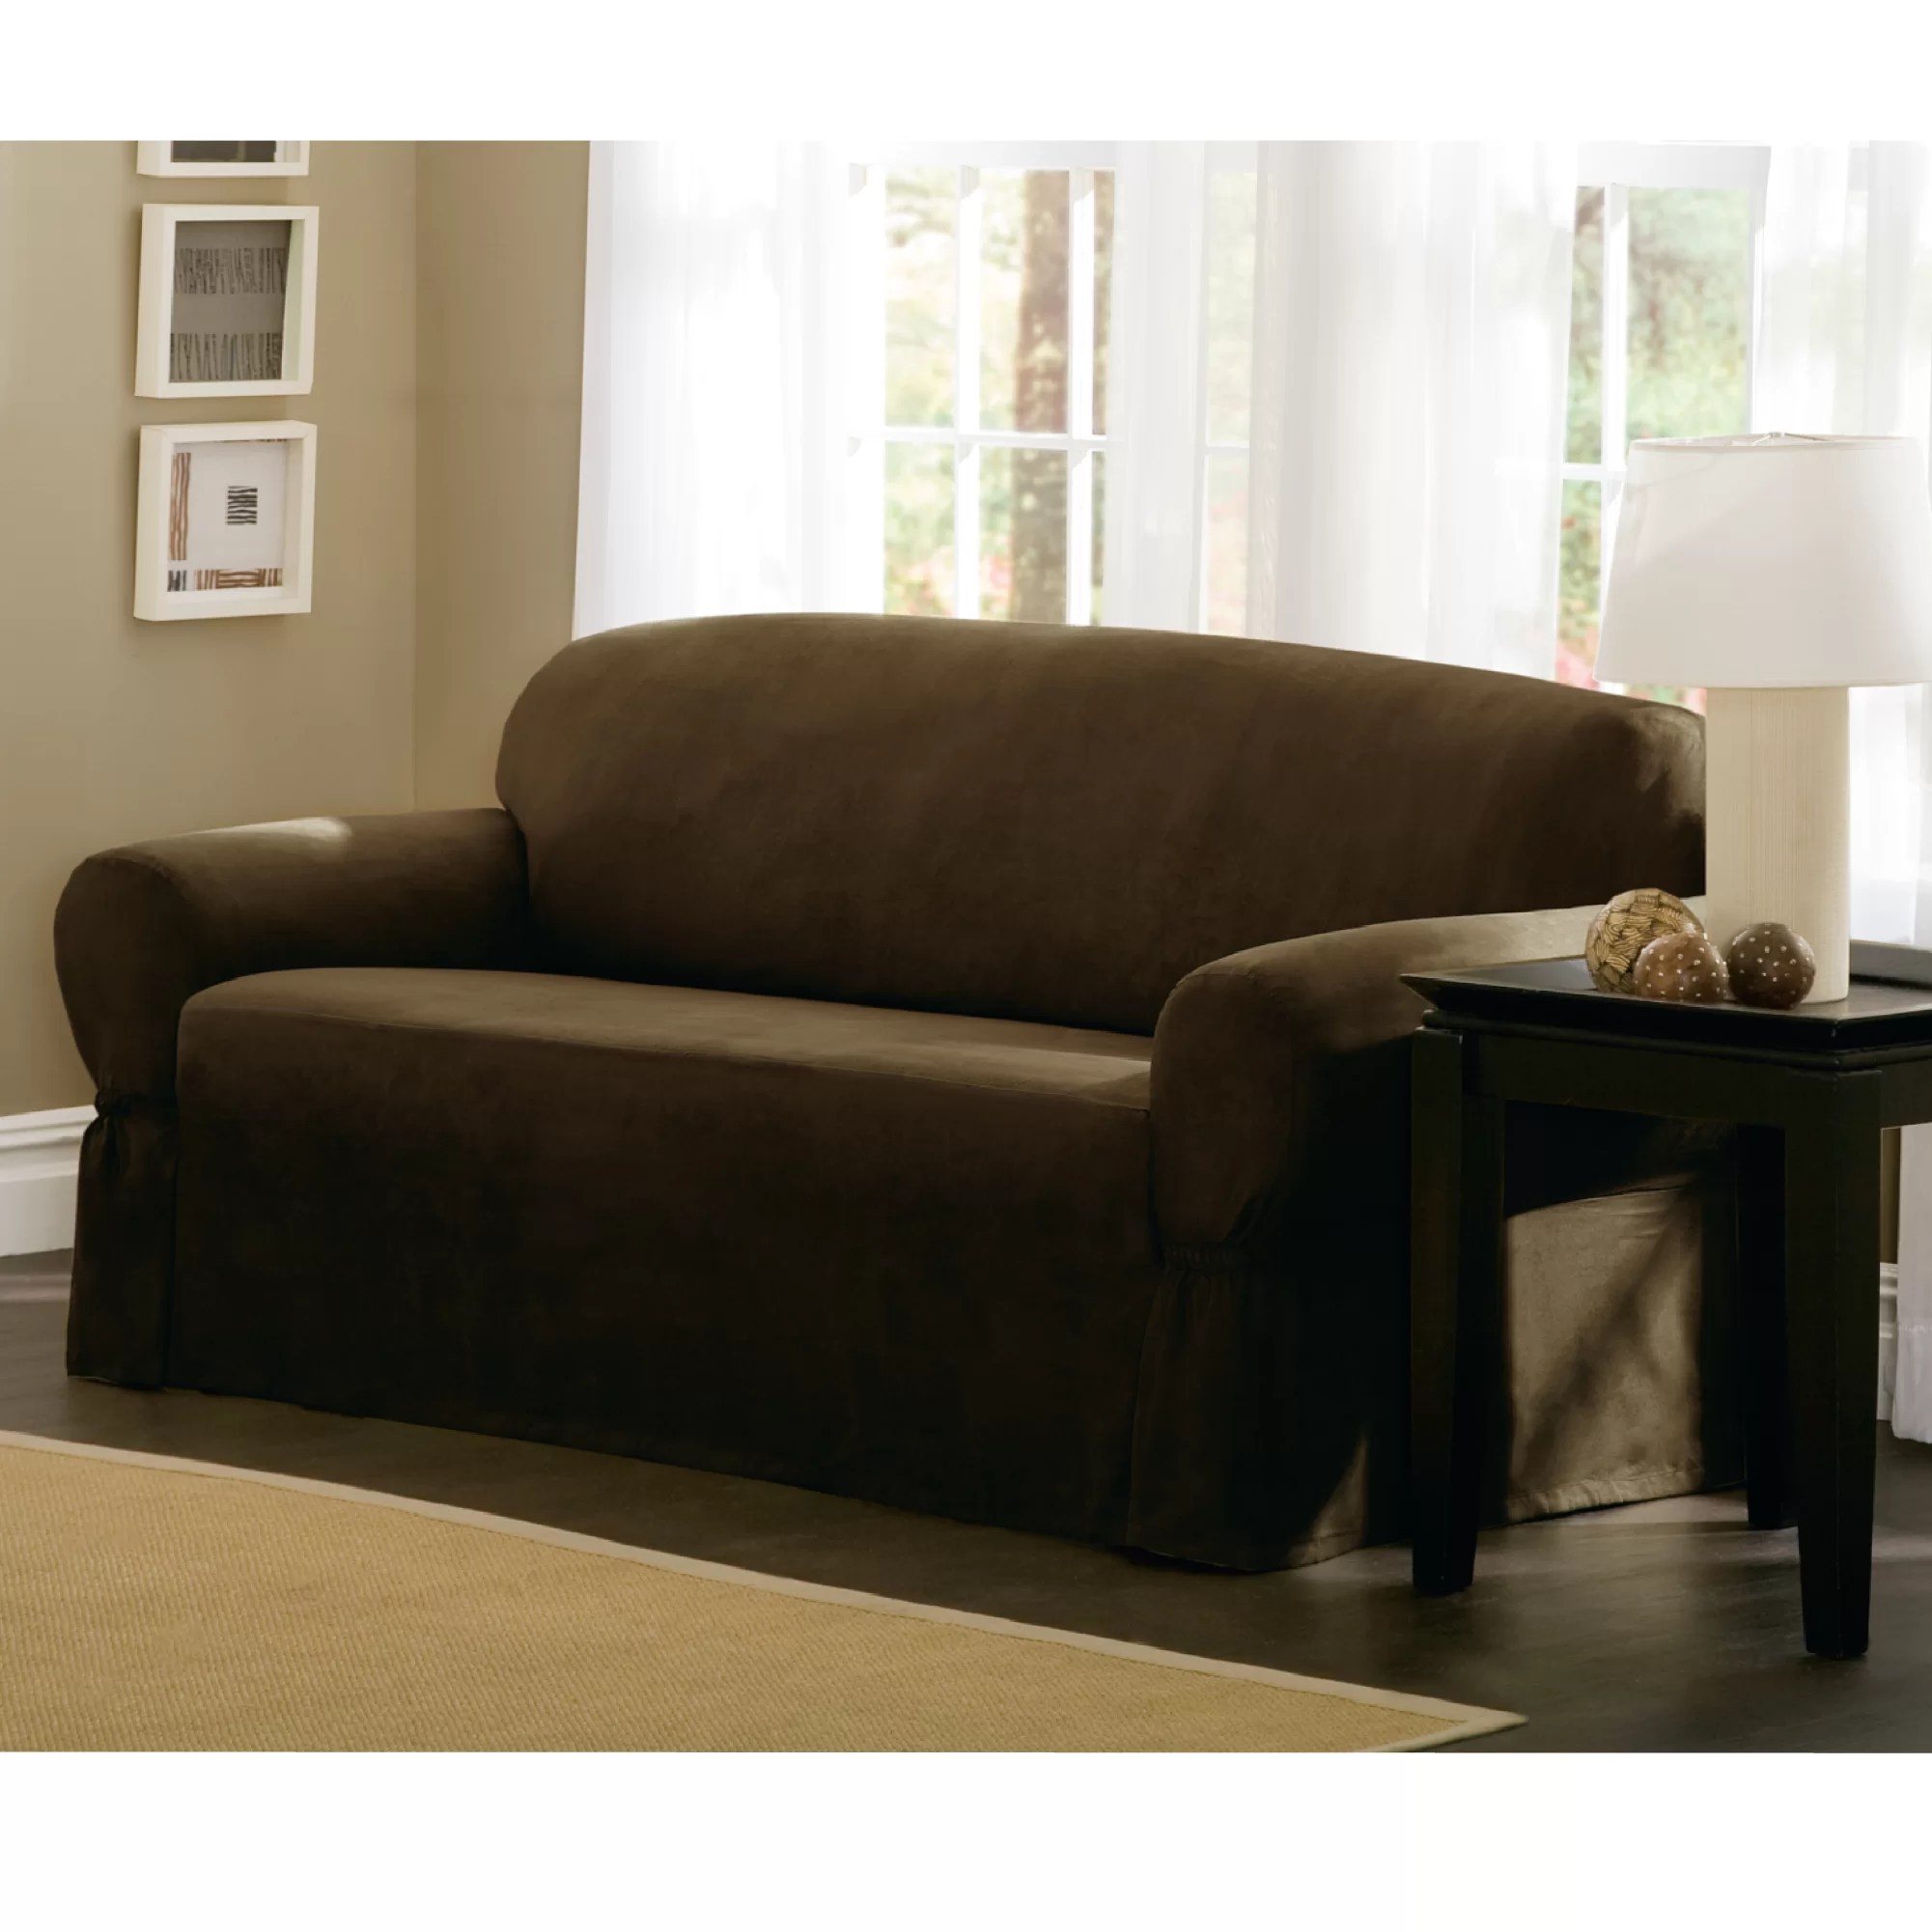 sofa covers low price small apartment size bed maytex t cushion loveseat slipcover and reviews wayfair